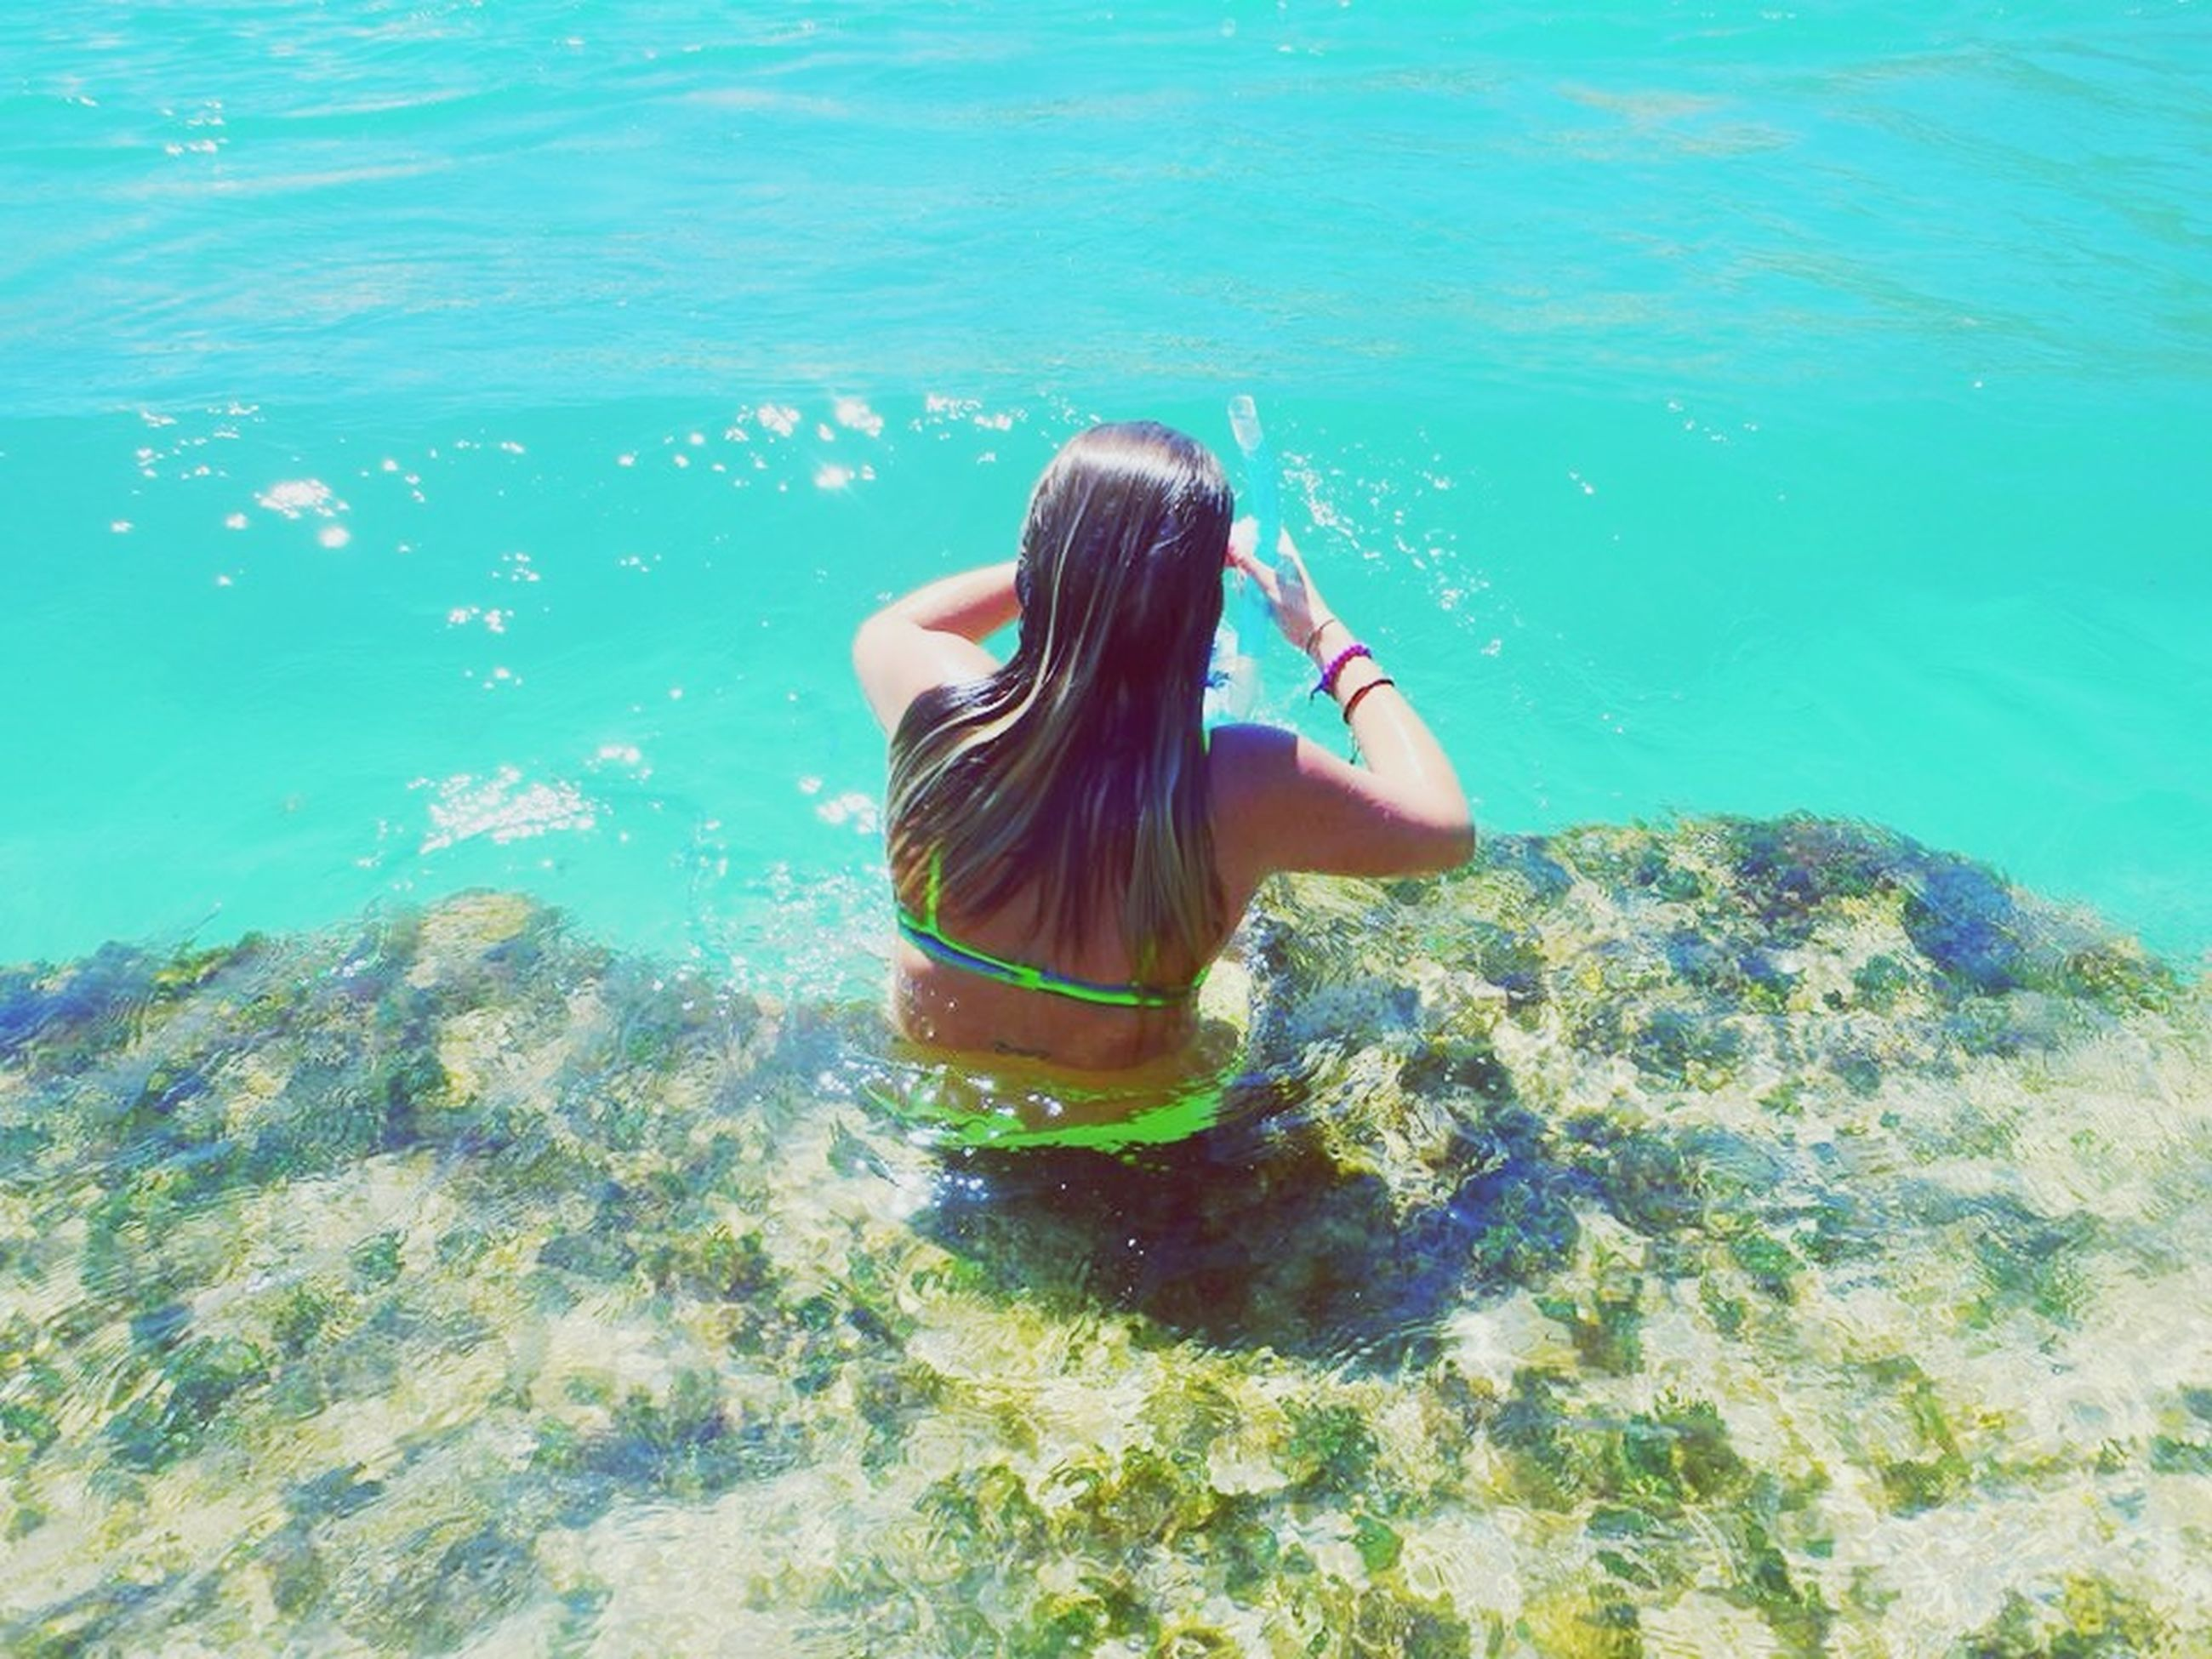 water, leisure activity, lifestyles, sea, blue, vacations, high angle view, full length, young adult, young women, relaxation, person, bikini, three quarter length, tranquility, nature, rear view, rock - object